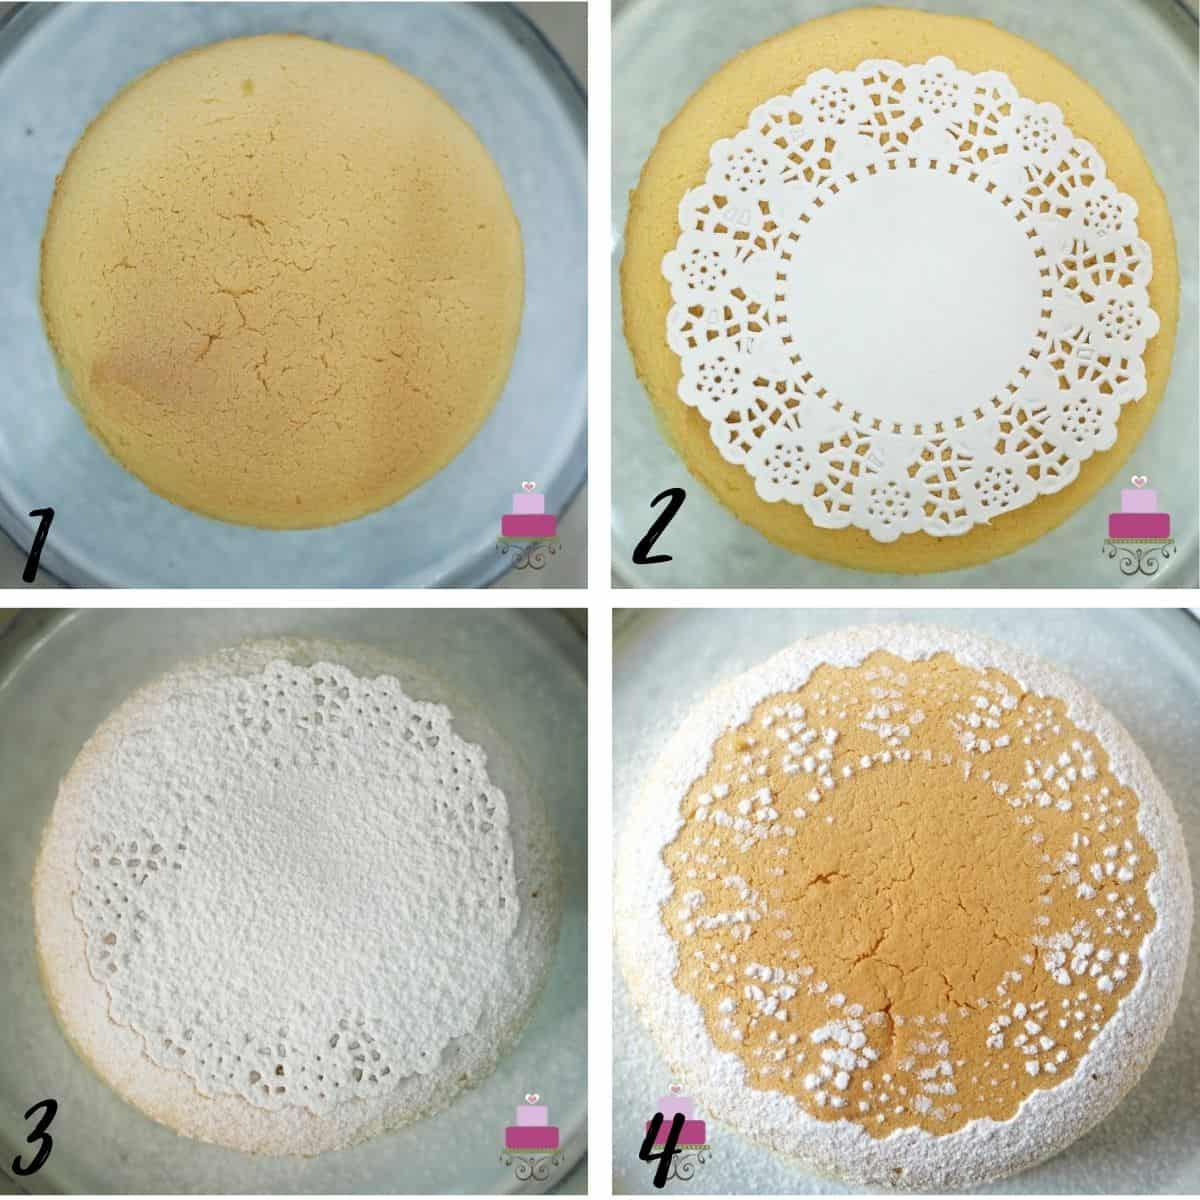 A poster of 4 images showing how to use a doily and icing sugar to decorate a cake